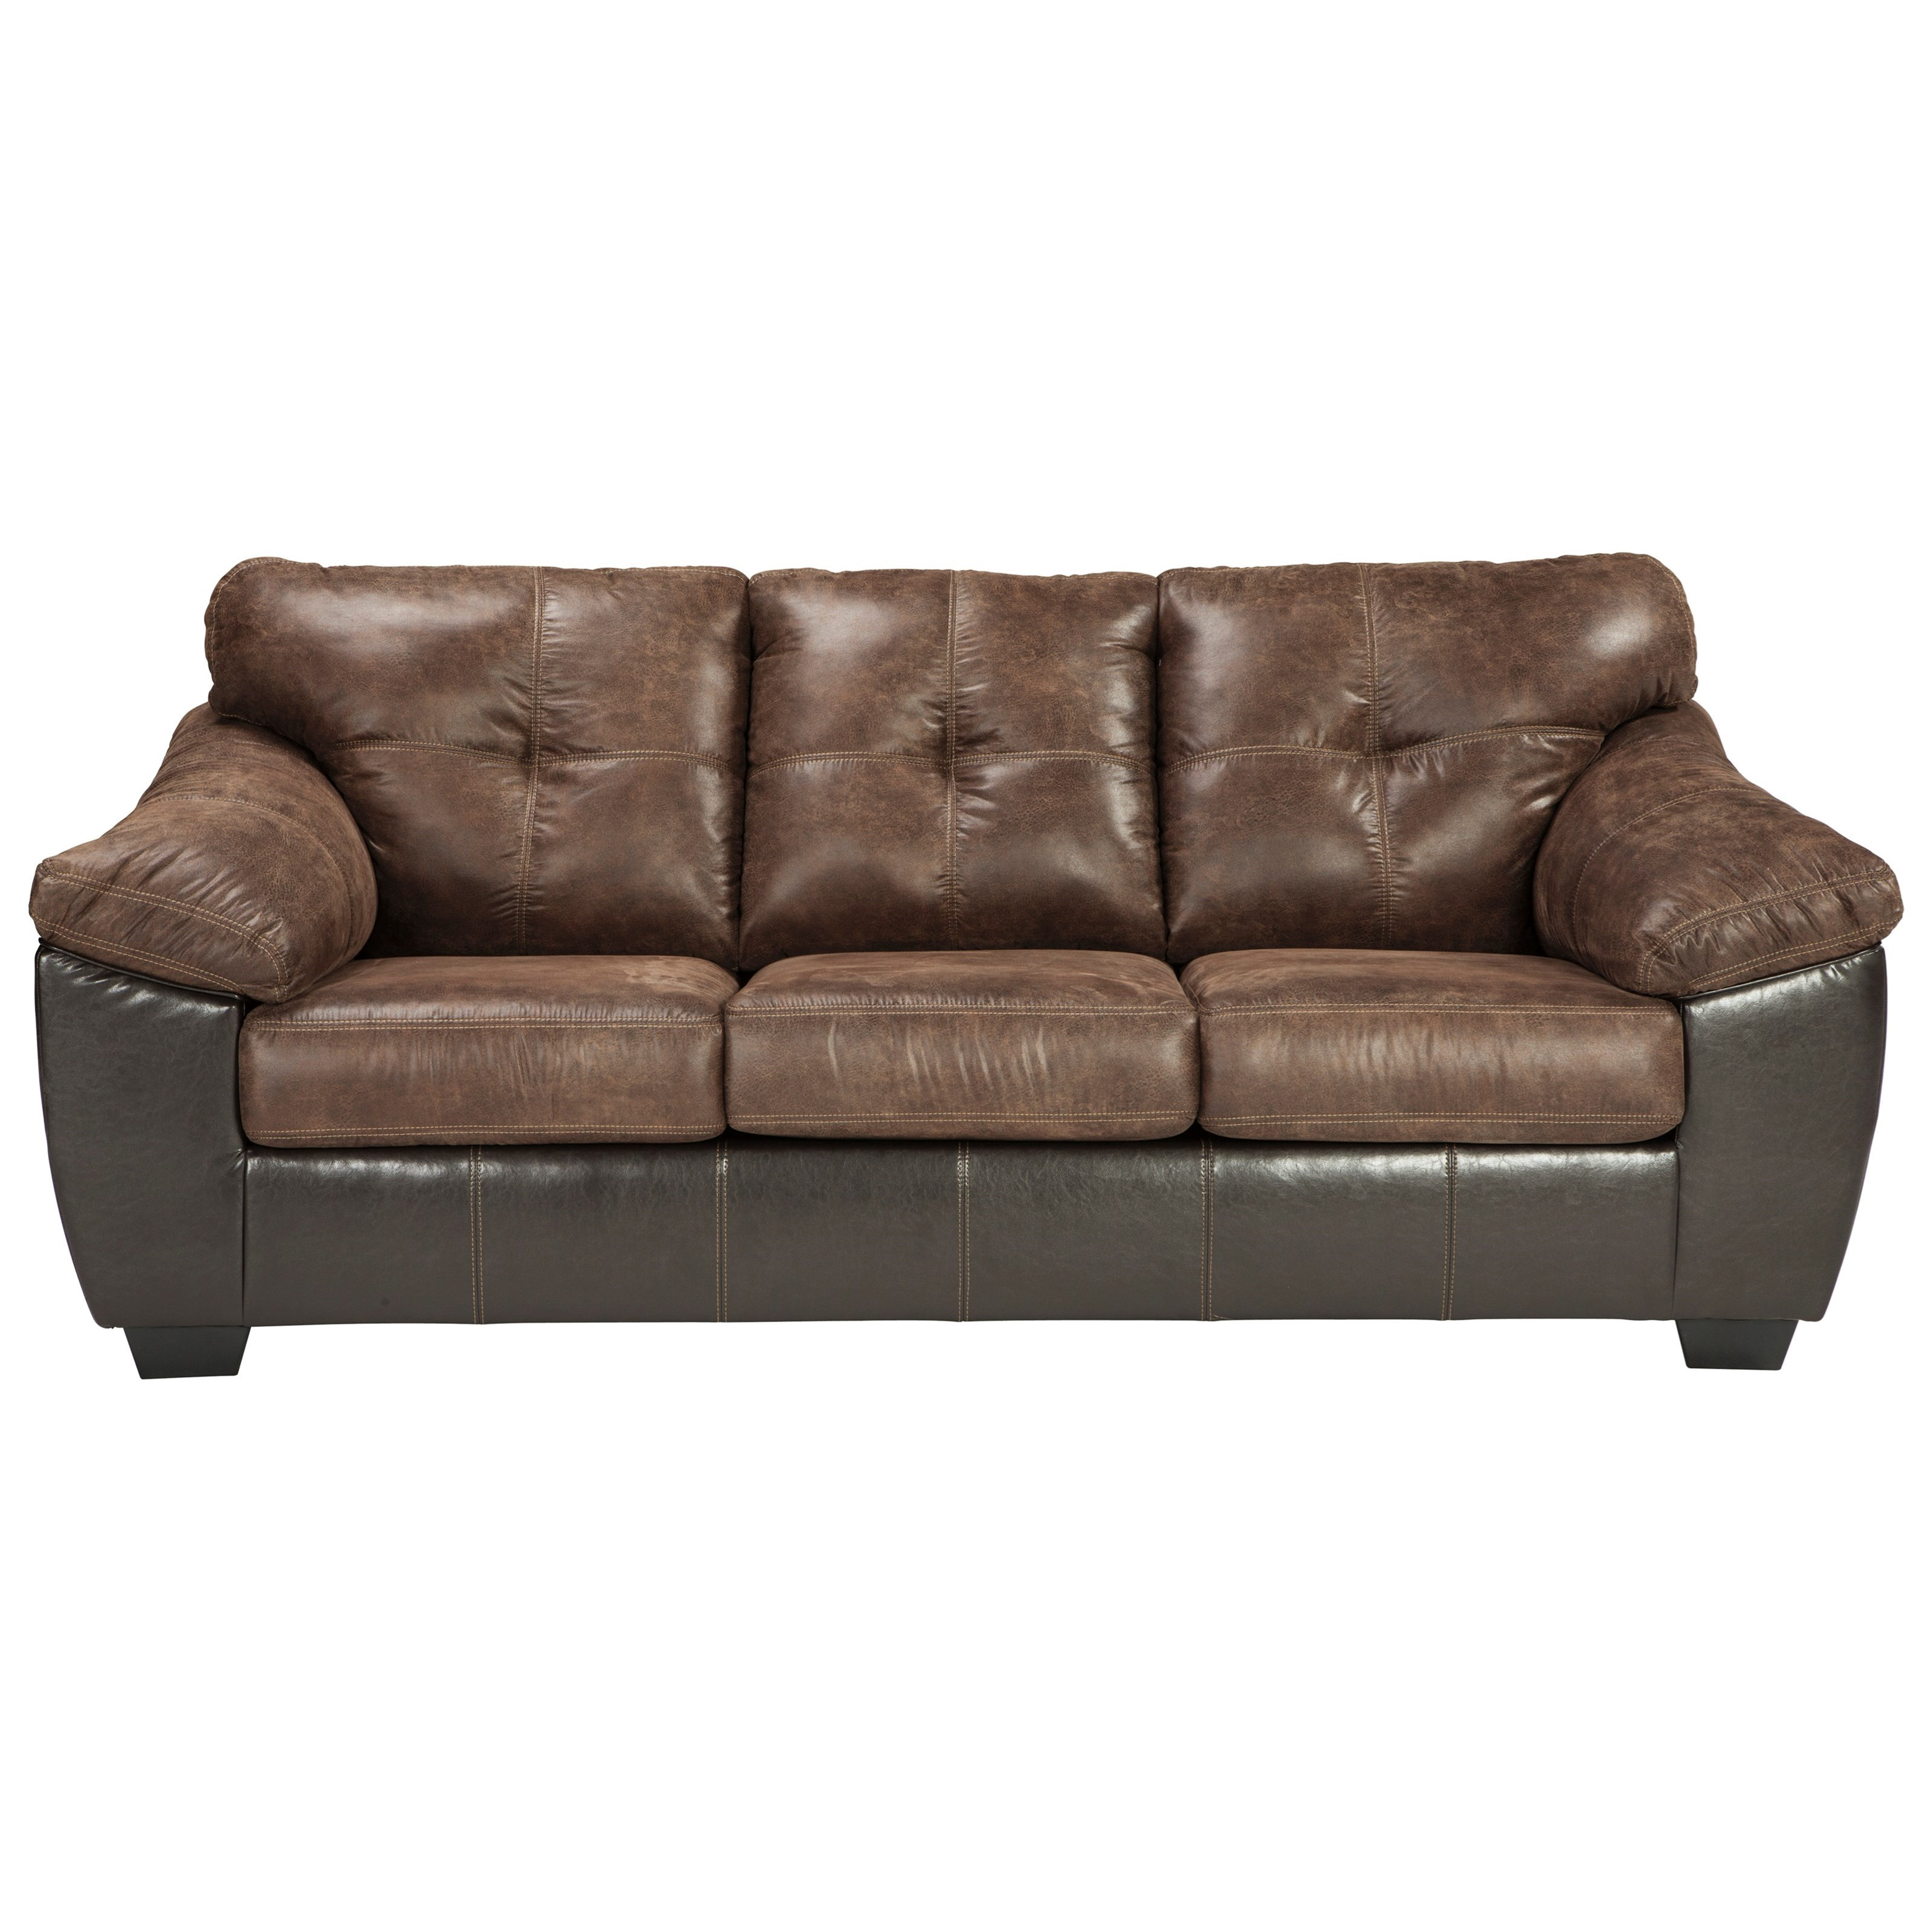 Gregale Sofa by Signature Design by Ashley at Zak's Warehouse Clearance Center